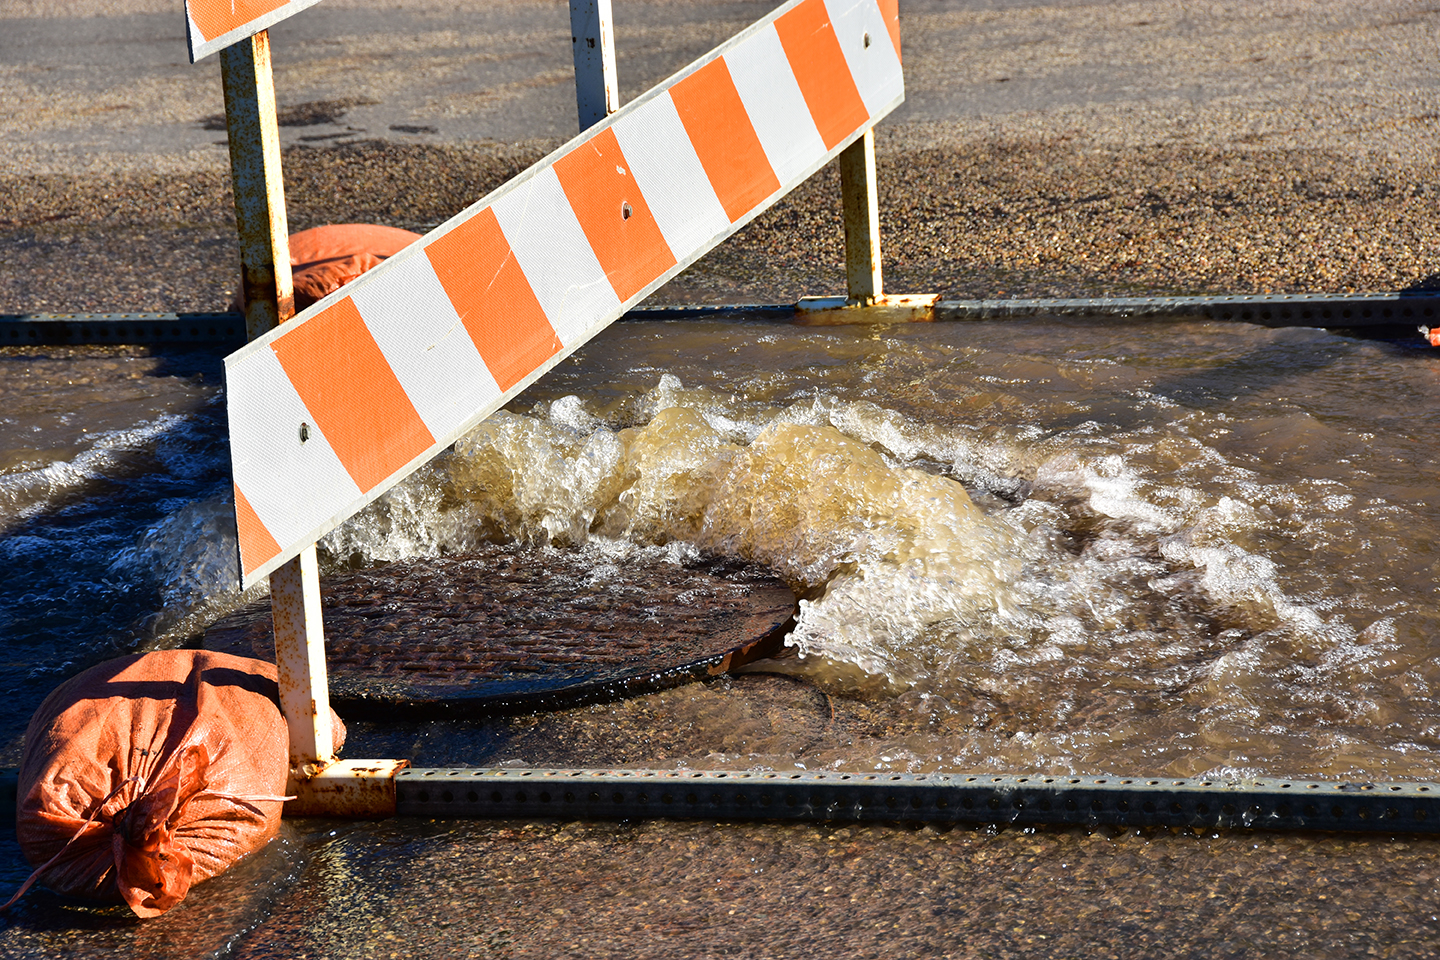 Stormwater Pollution Prevention Plans (SWPPP)